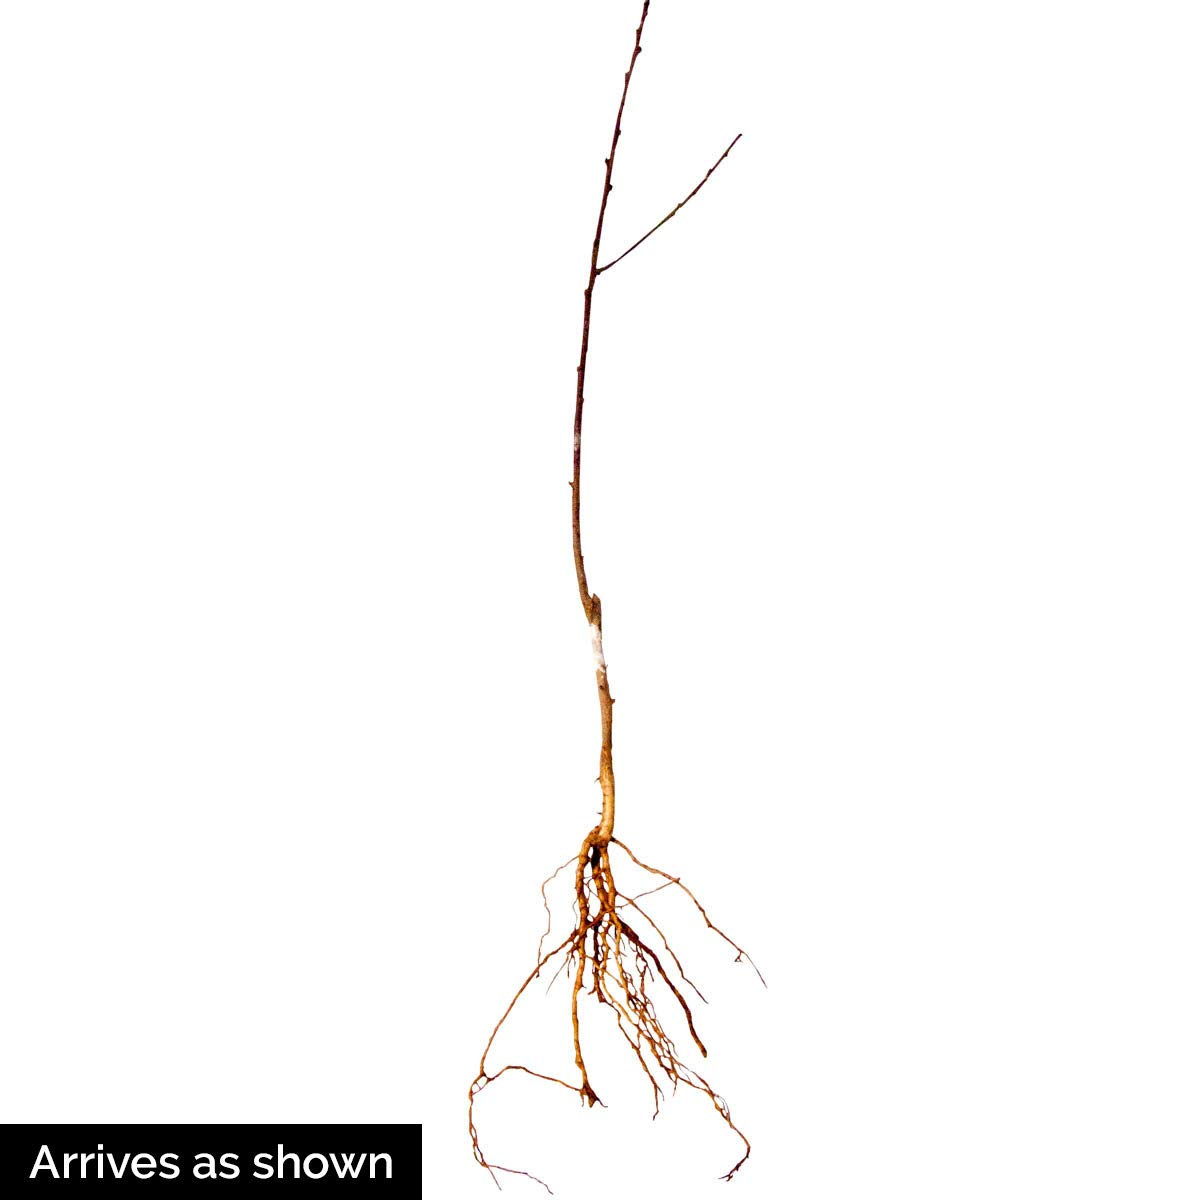 Nectarine Yumm Yumm REACHABLES Bare Root Fruit Tree - Enjoy Nectarines with Needing a Ladder to Maintain! Includes 1 Tree per Order. Due to regulations Can't Ship to AL AR CA CO ID LA MS OR WA by Gurneys (Image #5)